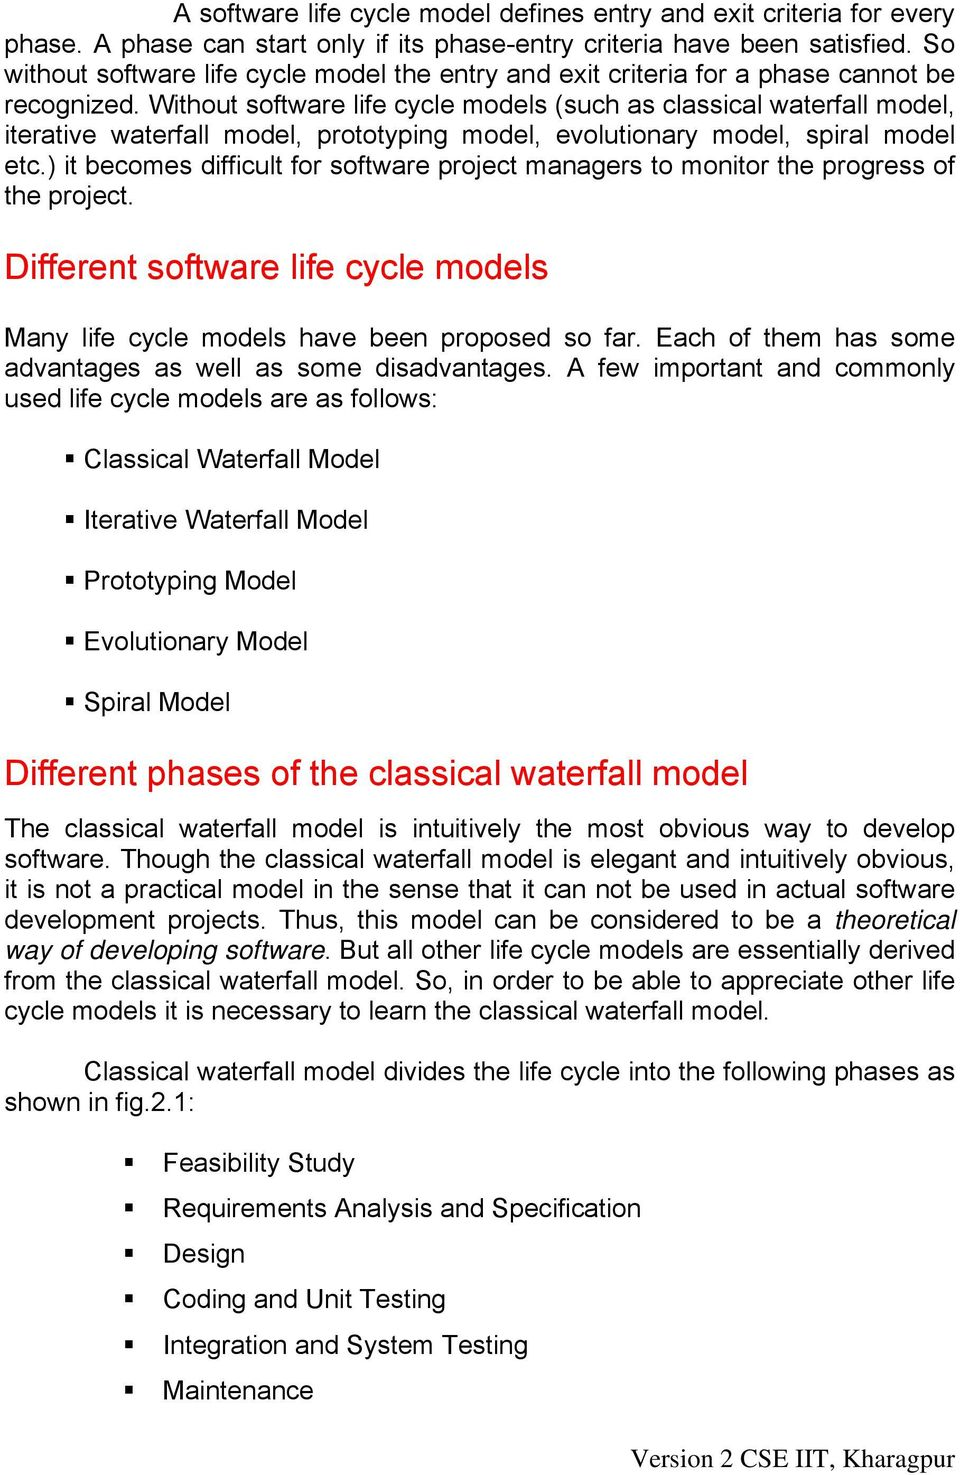 Without software life cycle models (such as classical waterfall model, iterative waterfall model, prototyping model, evolutionary model, spiral model etc.